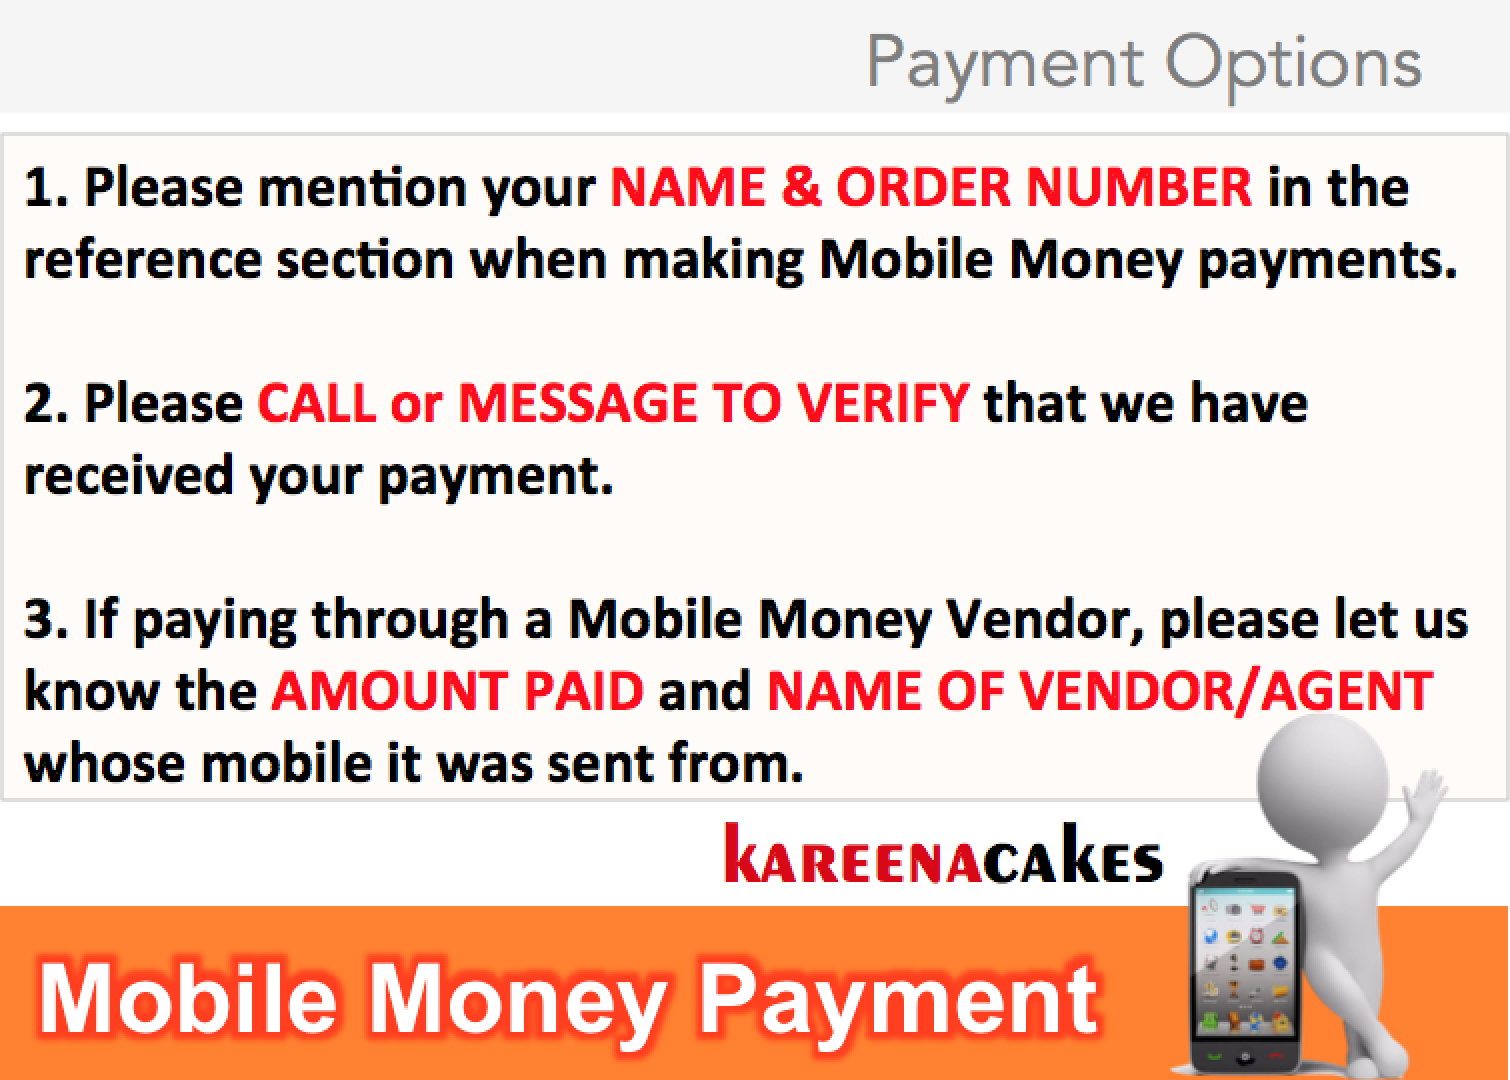 PAYMENT MOBILE MONEY 2